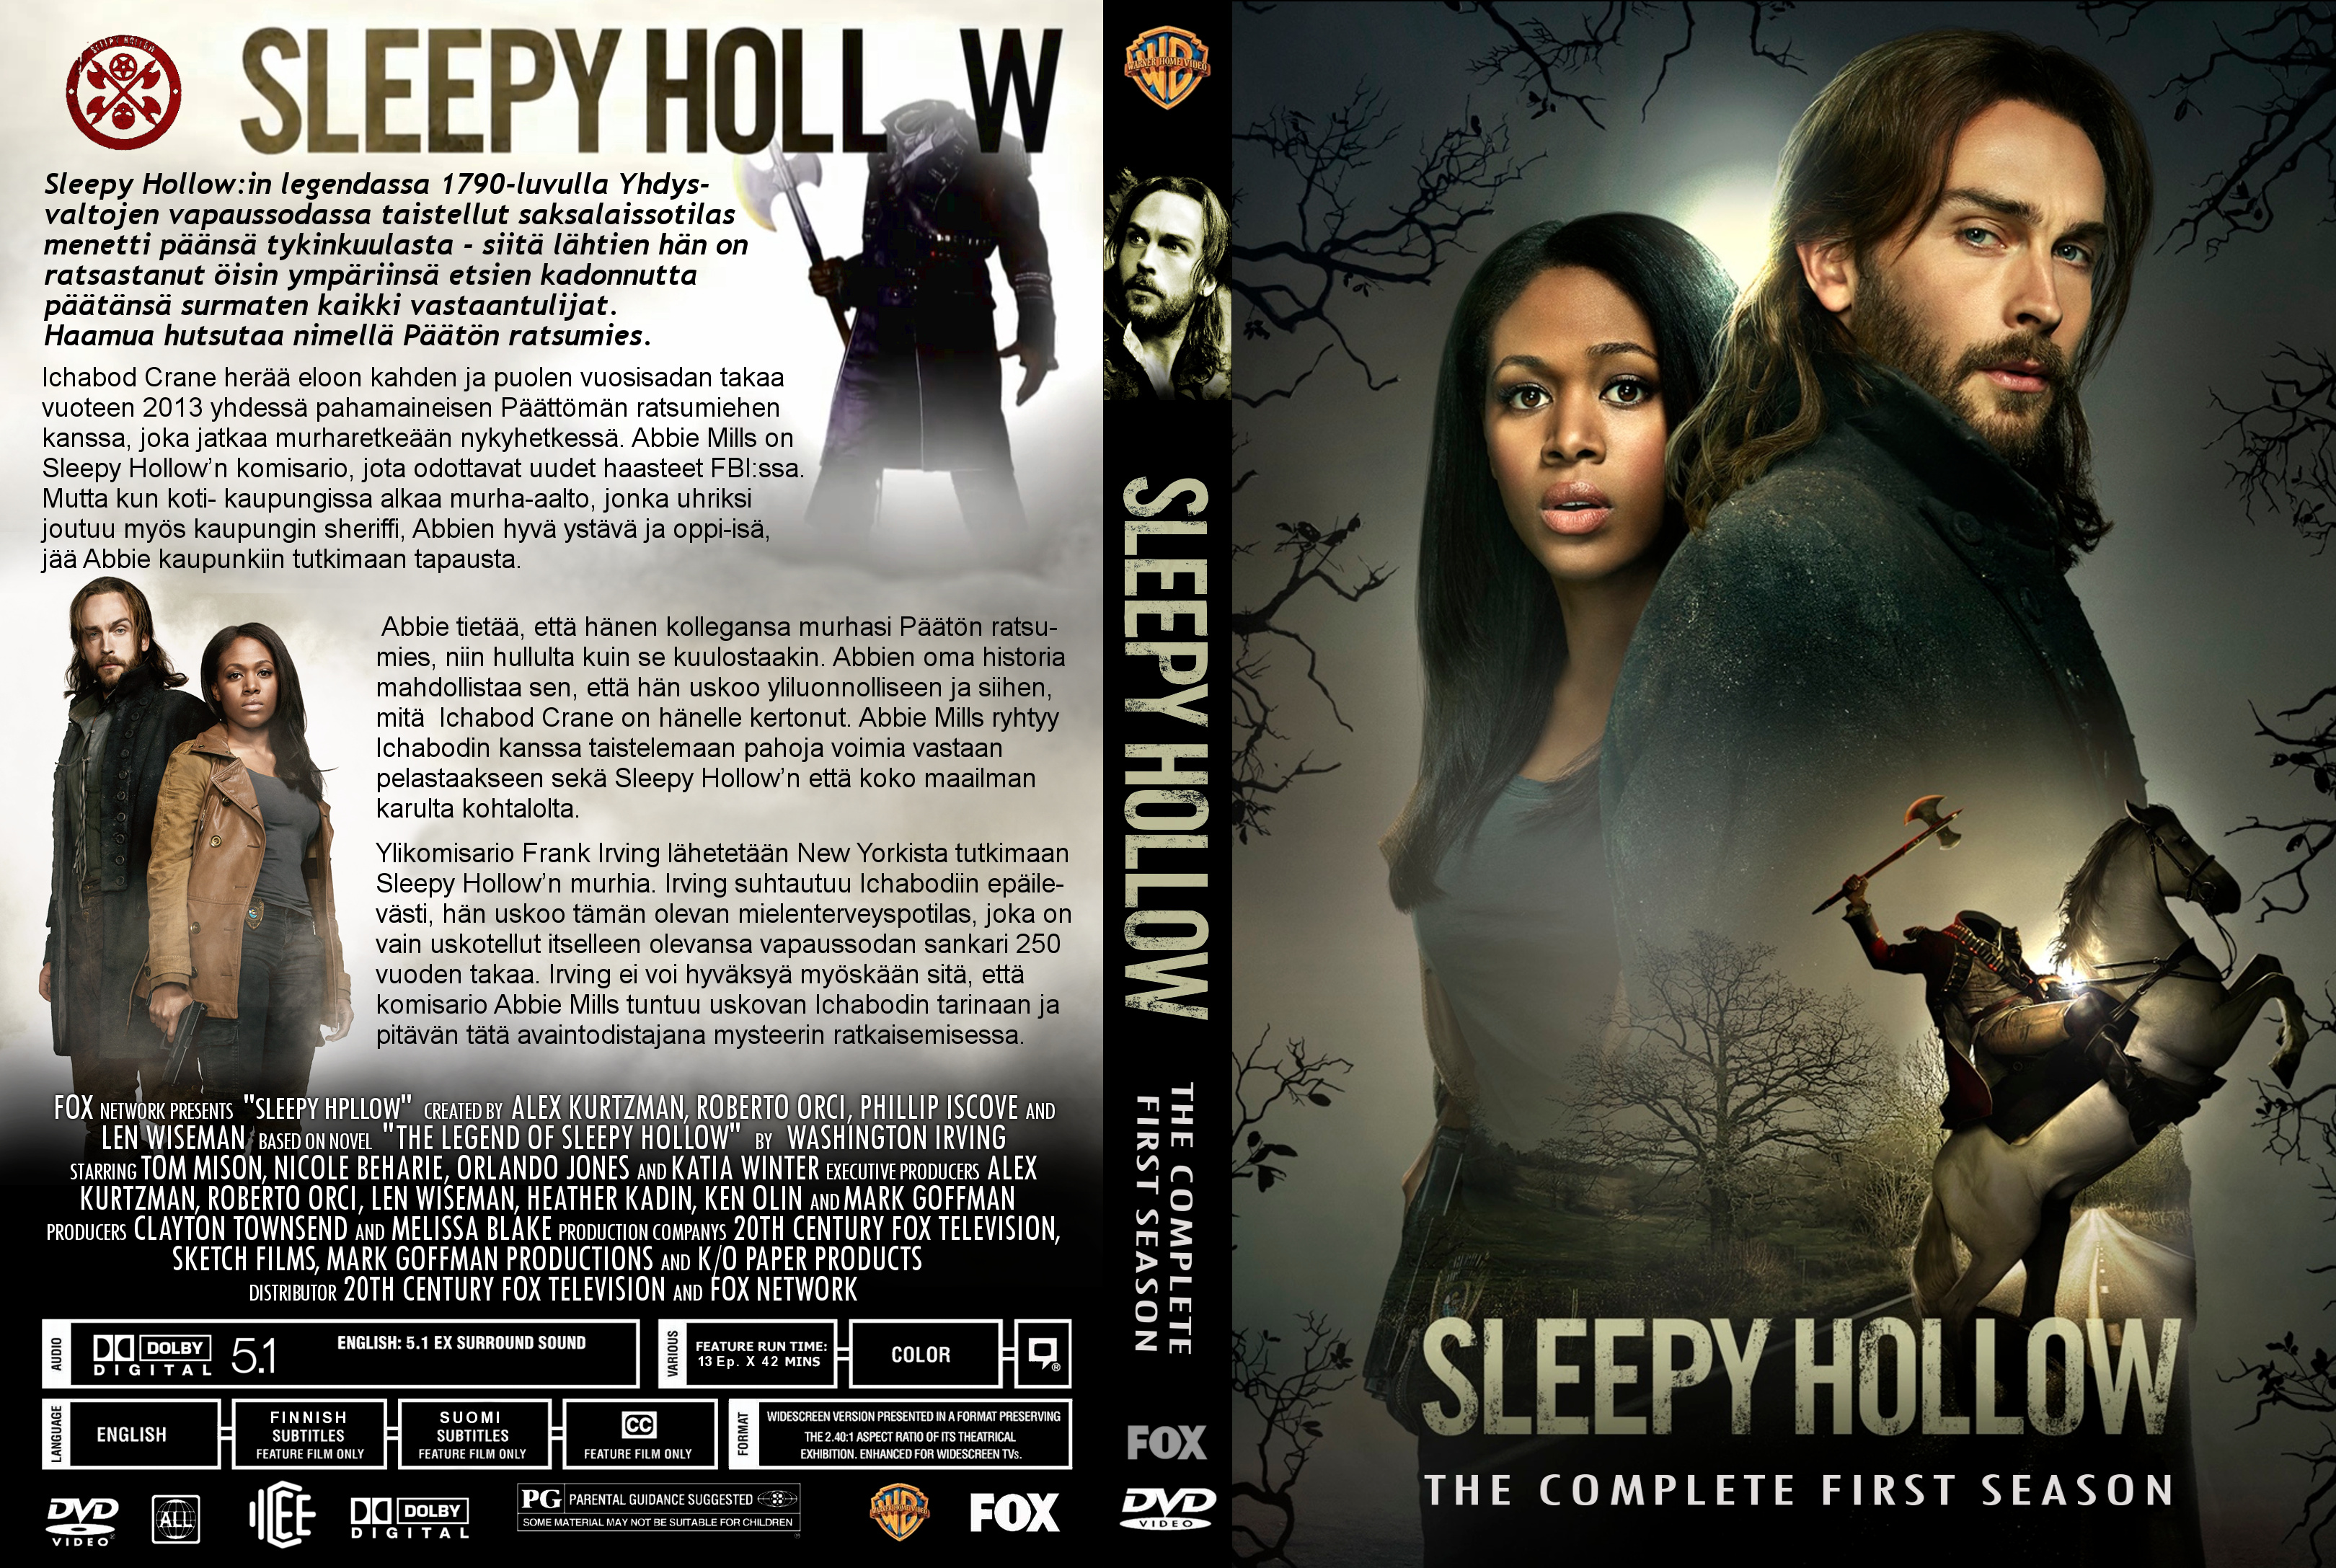 Sleepy hollow season 3 premiere date in Australia